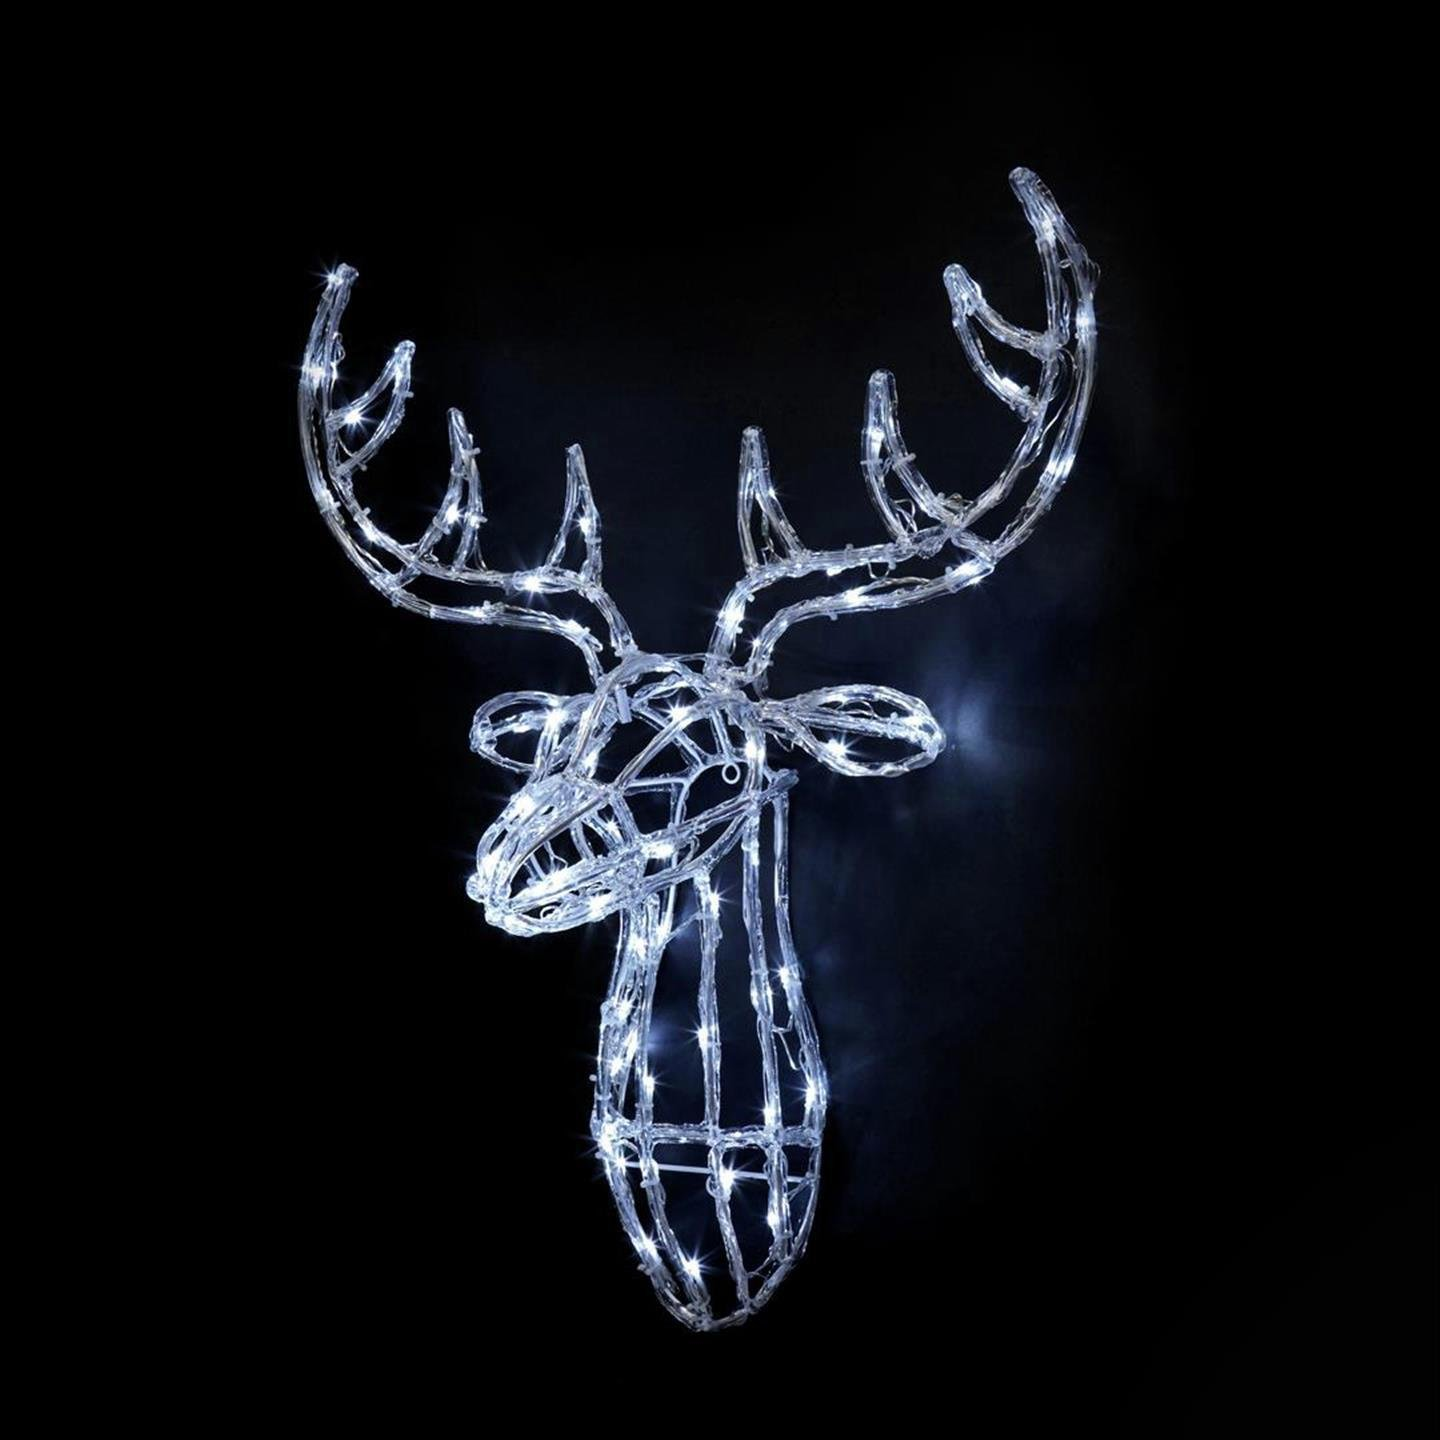 Premier Decorations 70cm LED Acrylic Reindeer Head - White